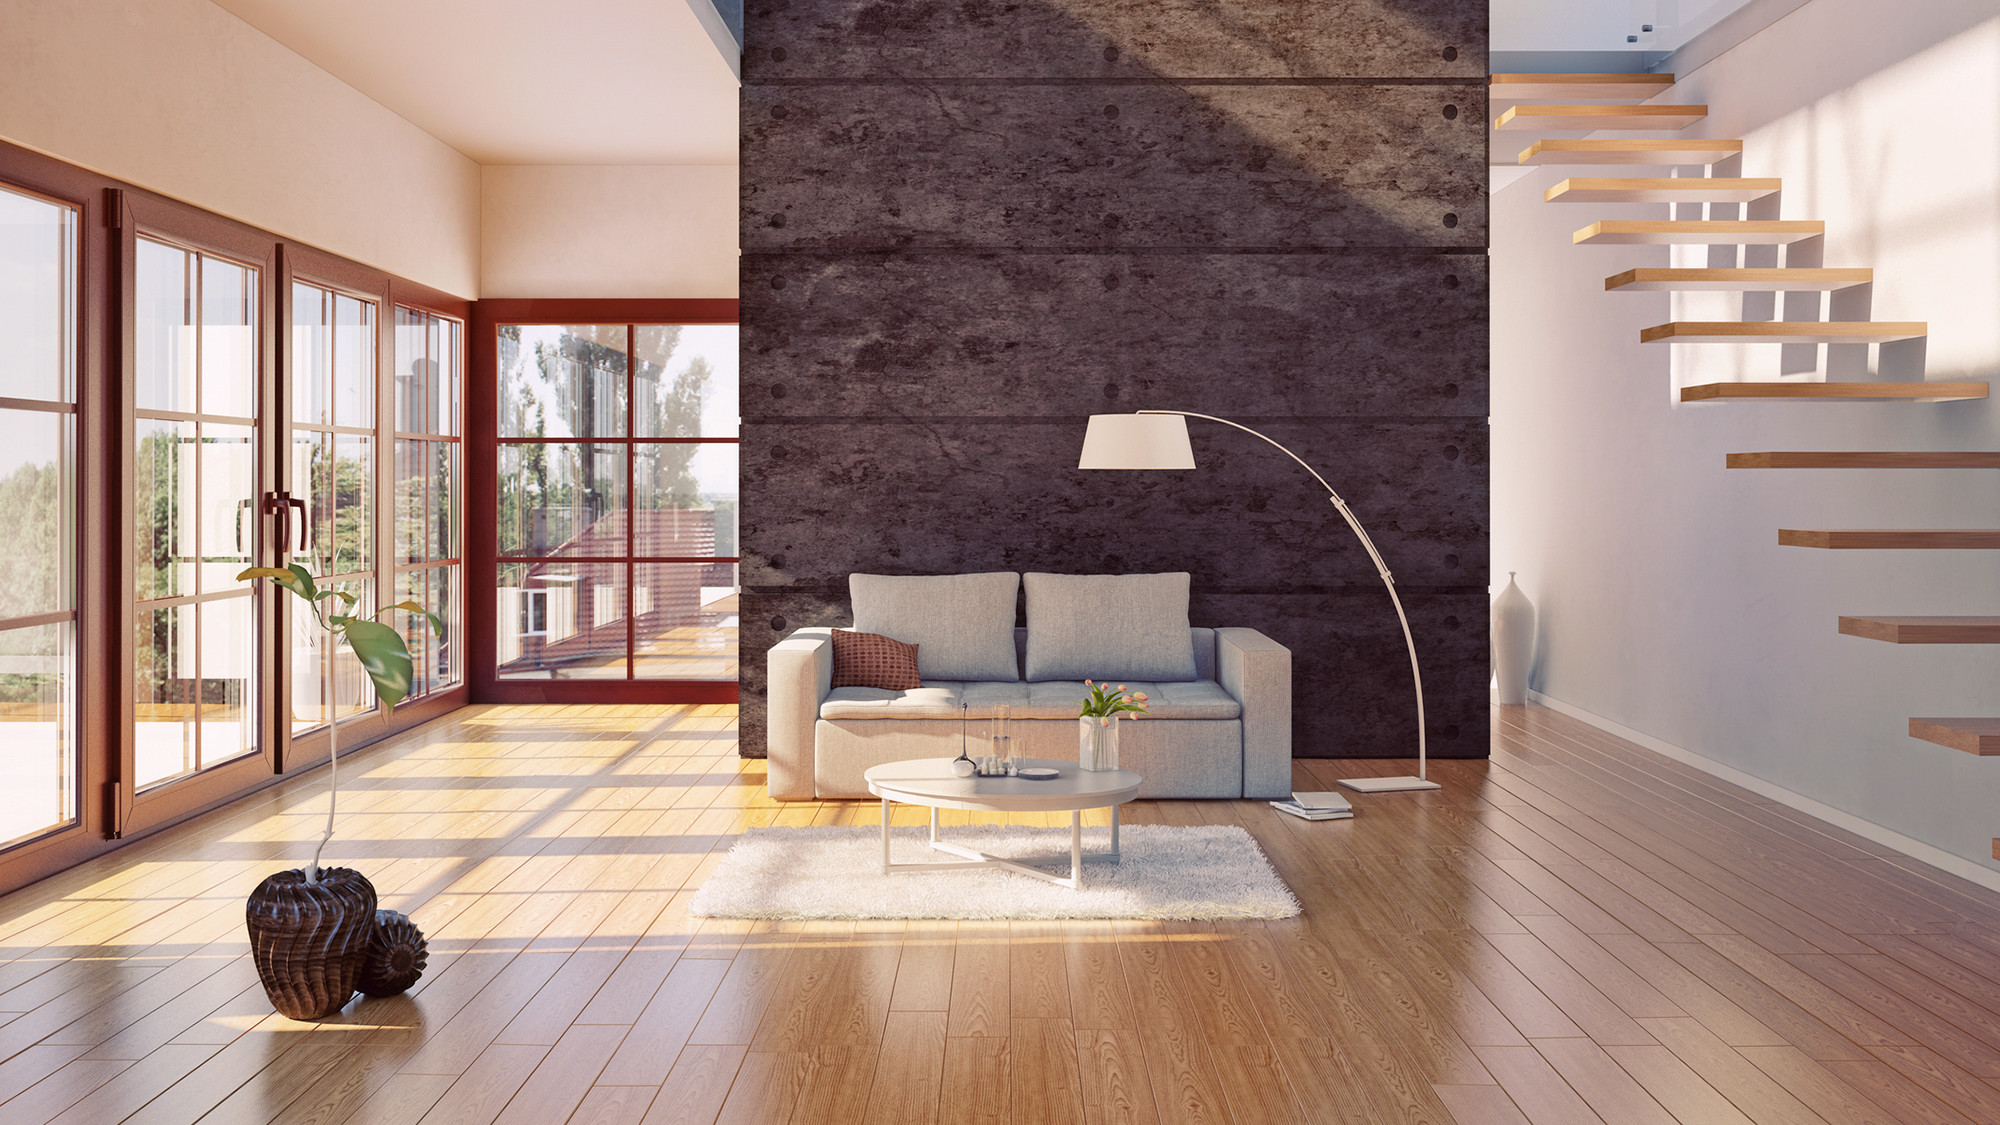 laminate hardwood floor cleaner of do hardwood floors provide the best return on investment realtor coma pertaining to hardwood floors investment